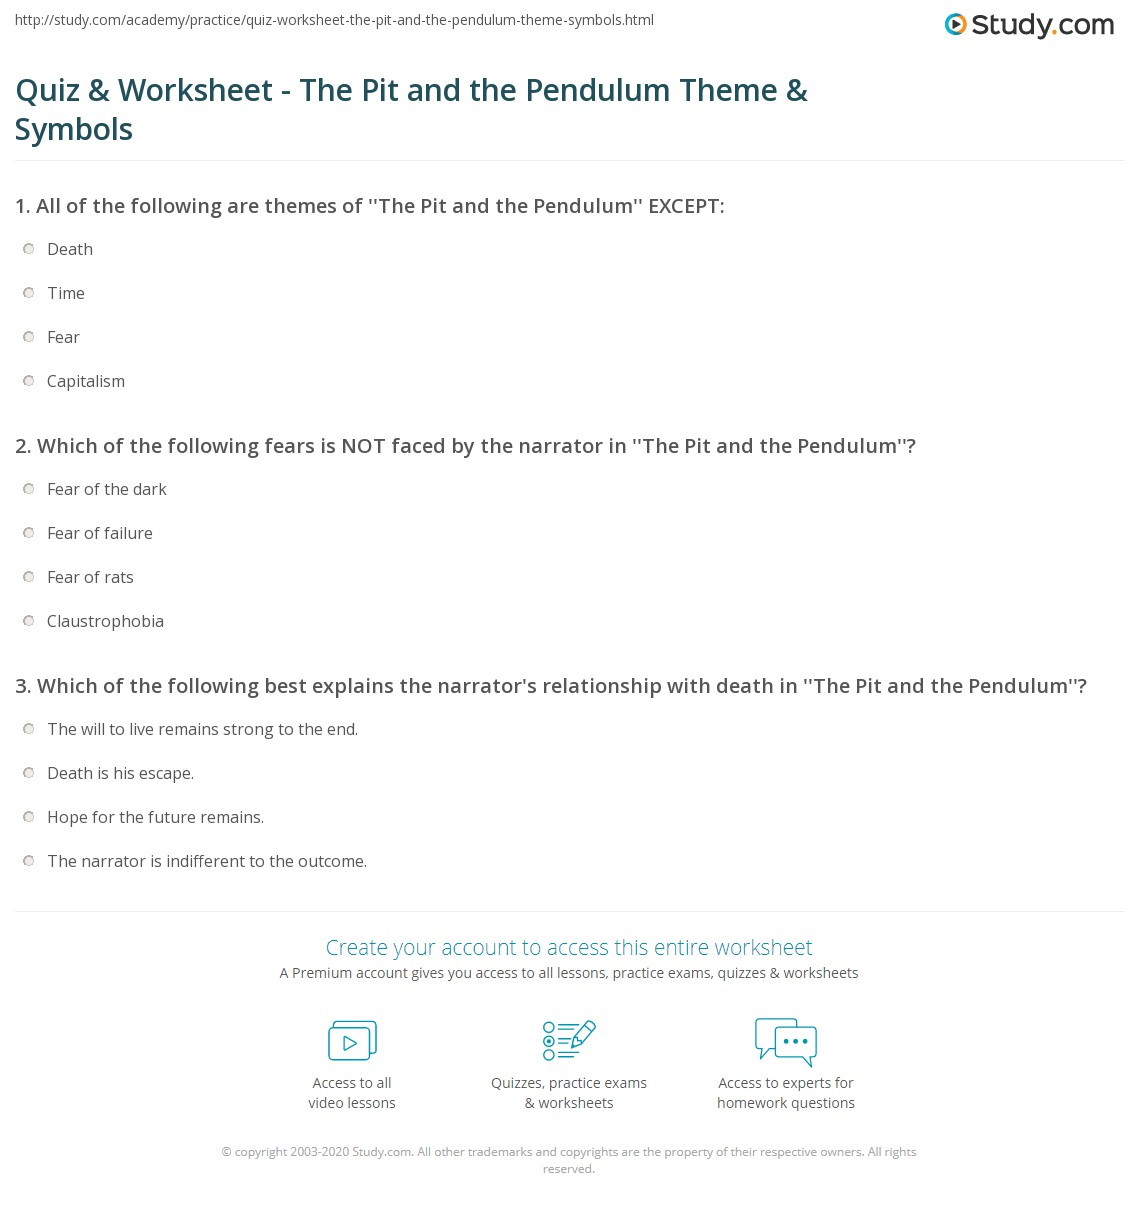 Worksheets Symbolism Worksheets quiz worksheet the pit and pendulum theme symbols study com print symbolism worksheet